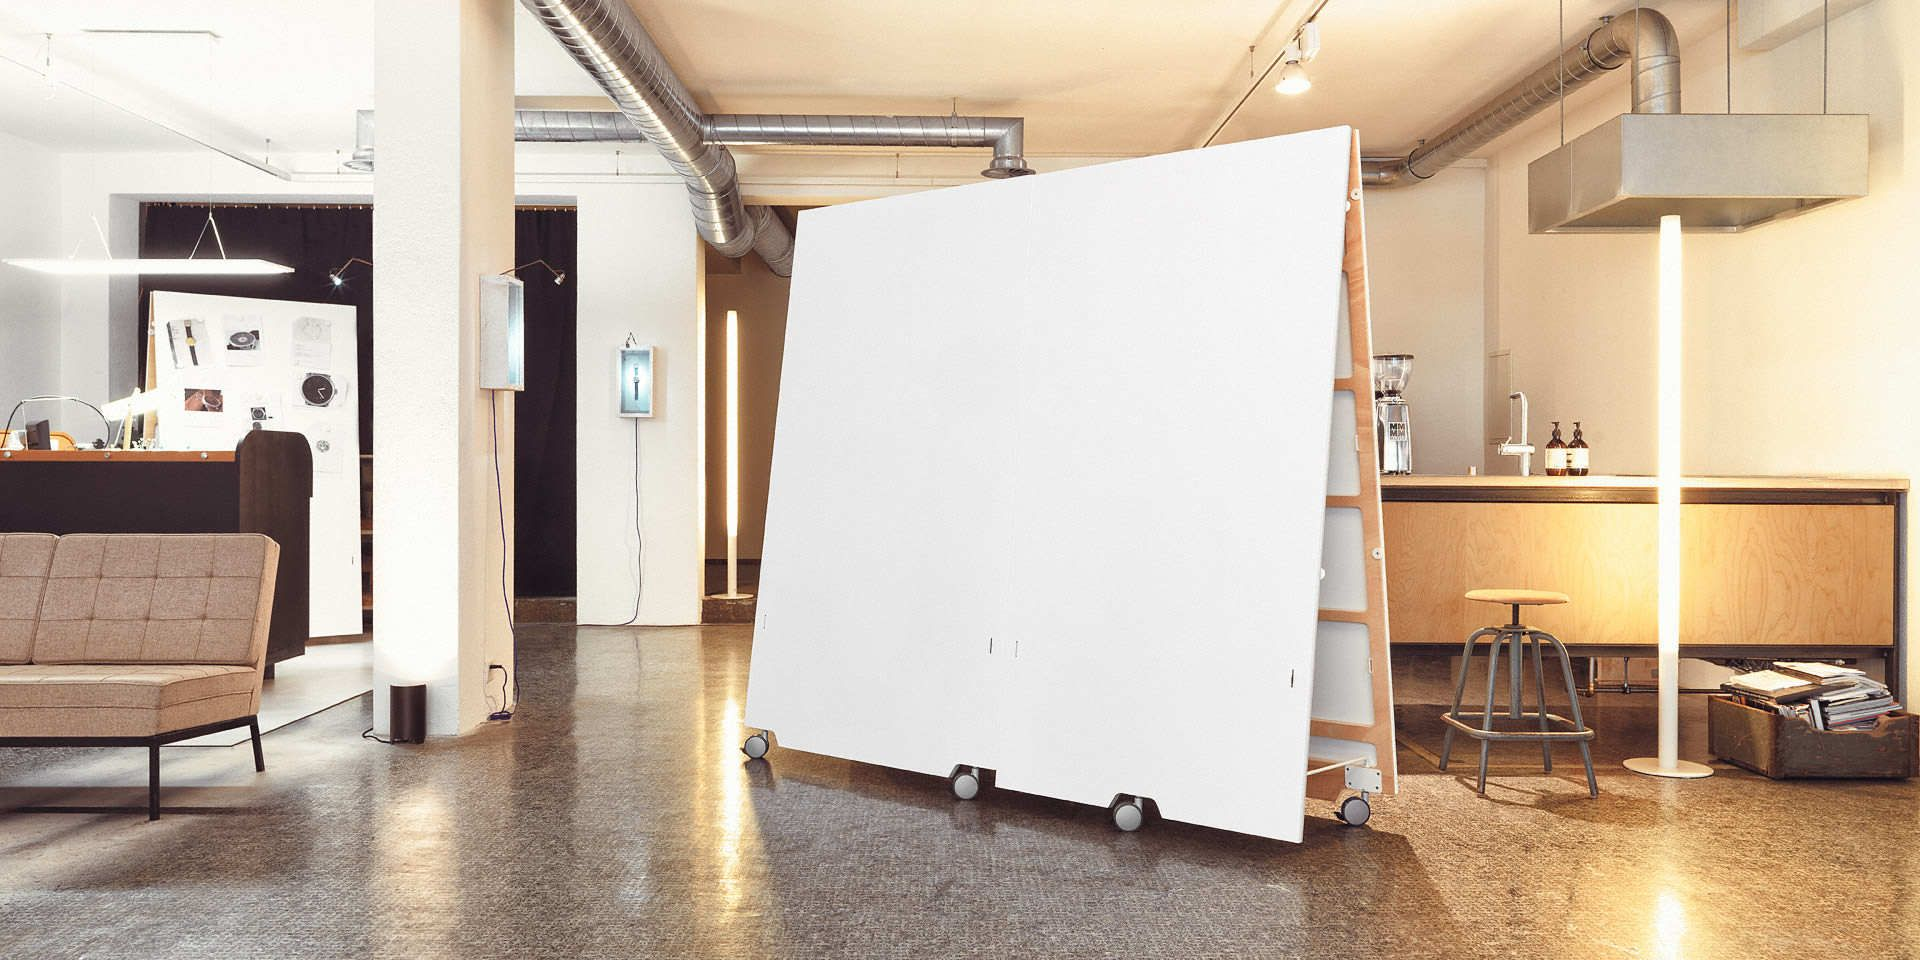 moving-walls | Mobile Work Walls | Pinterest